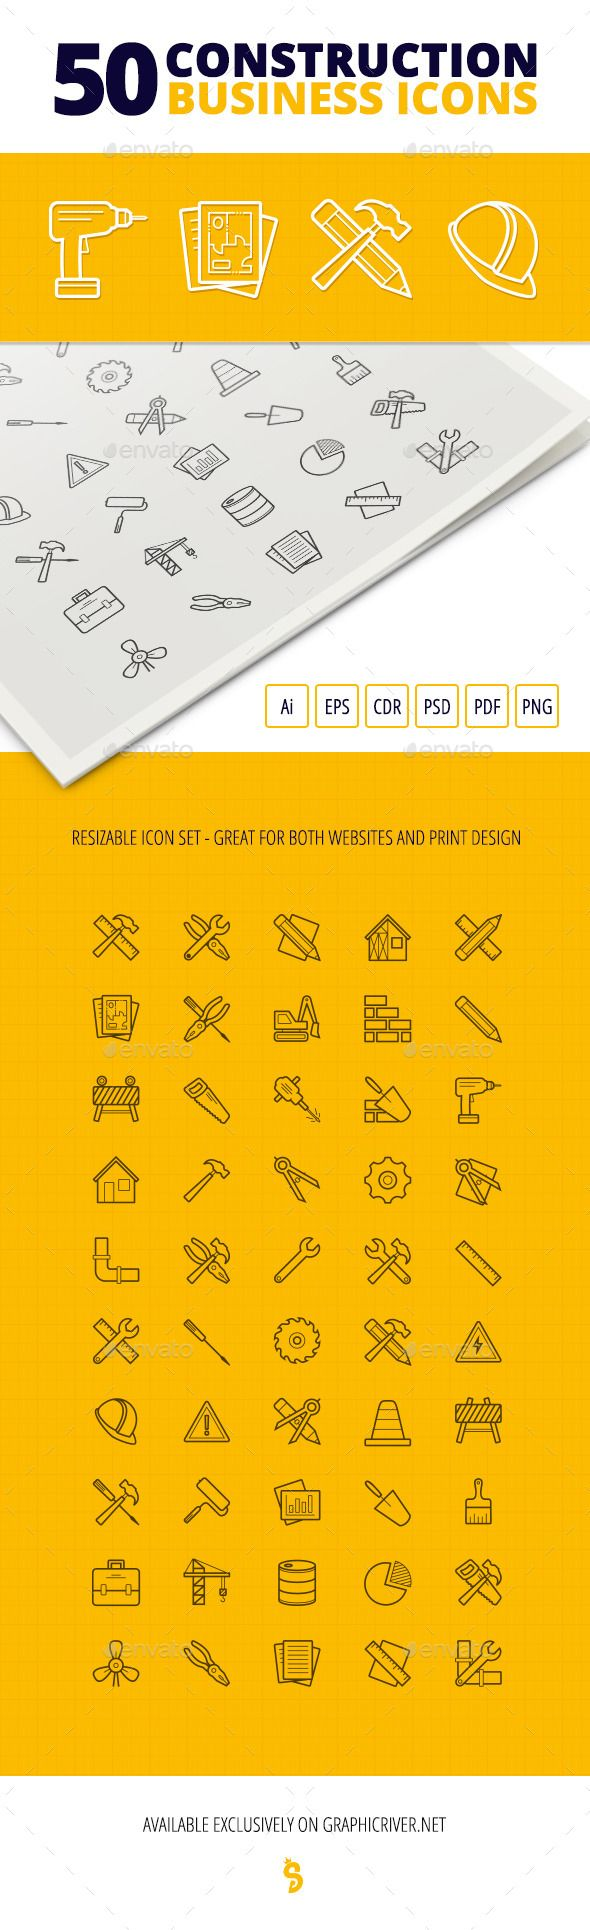 50 construction business icons construction business icons and 50 construction business icons reheart Images